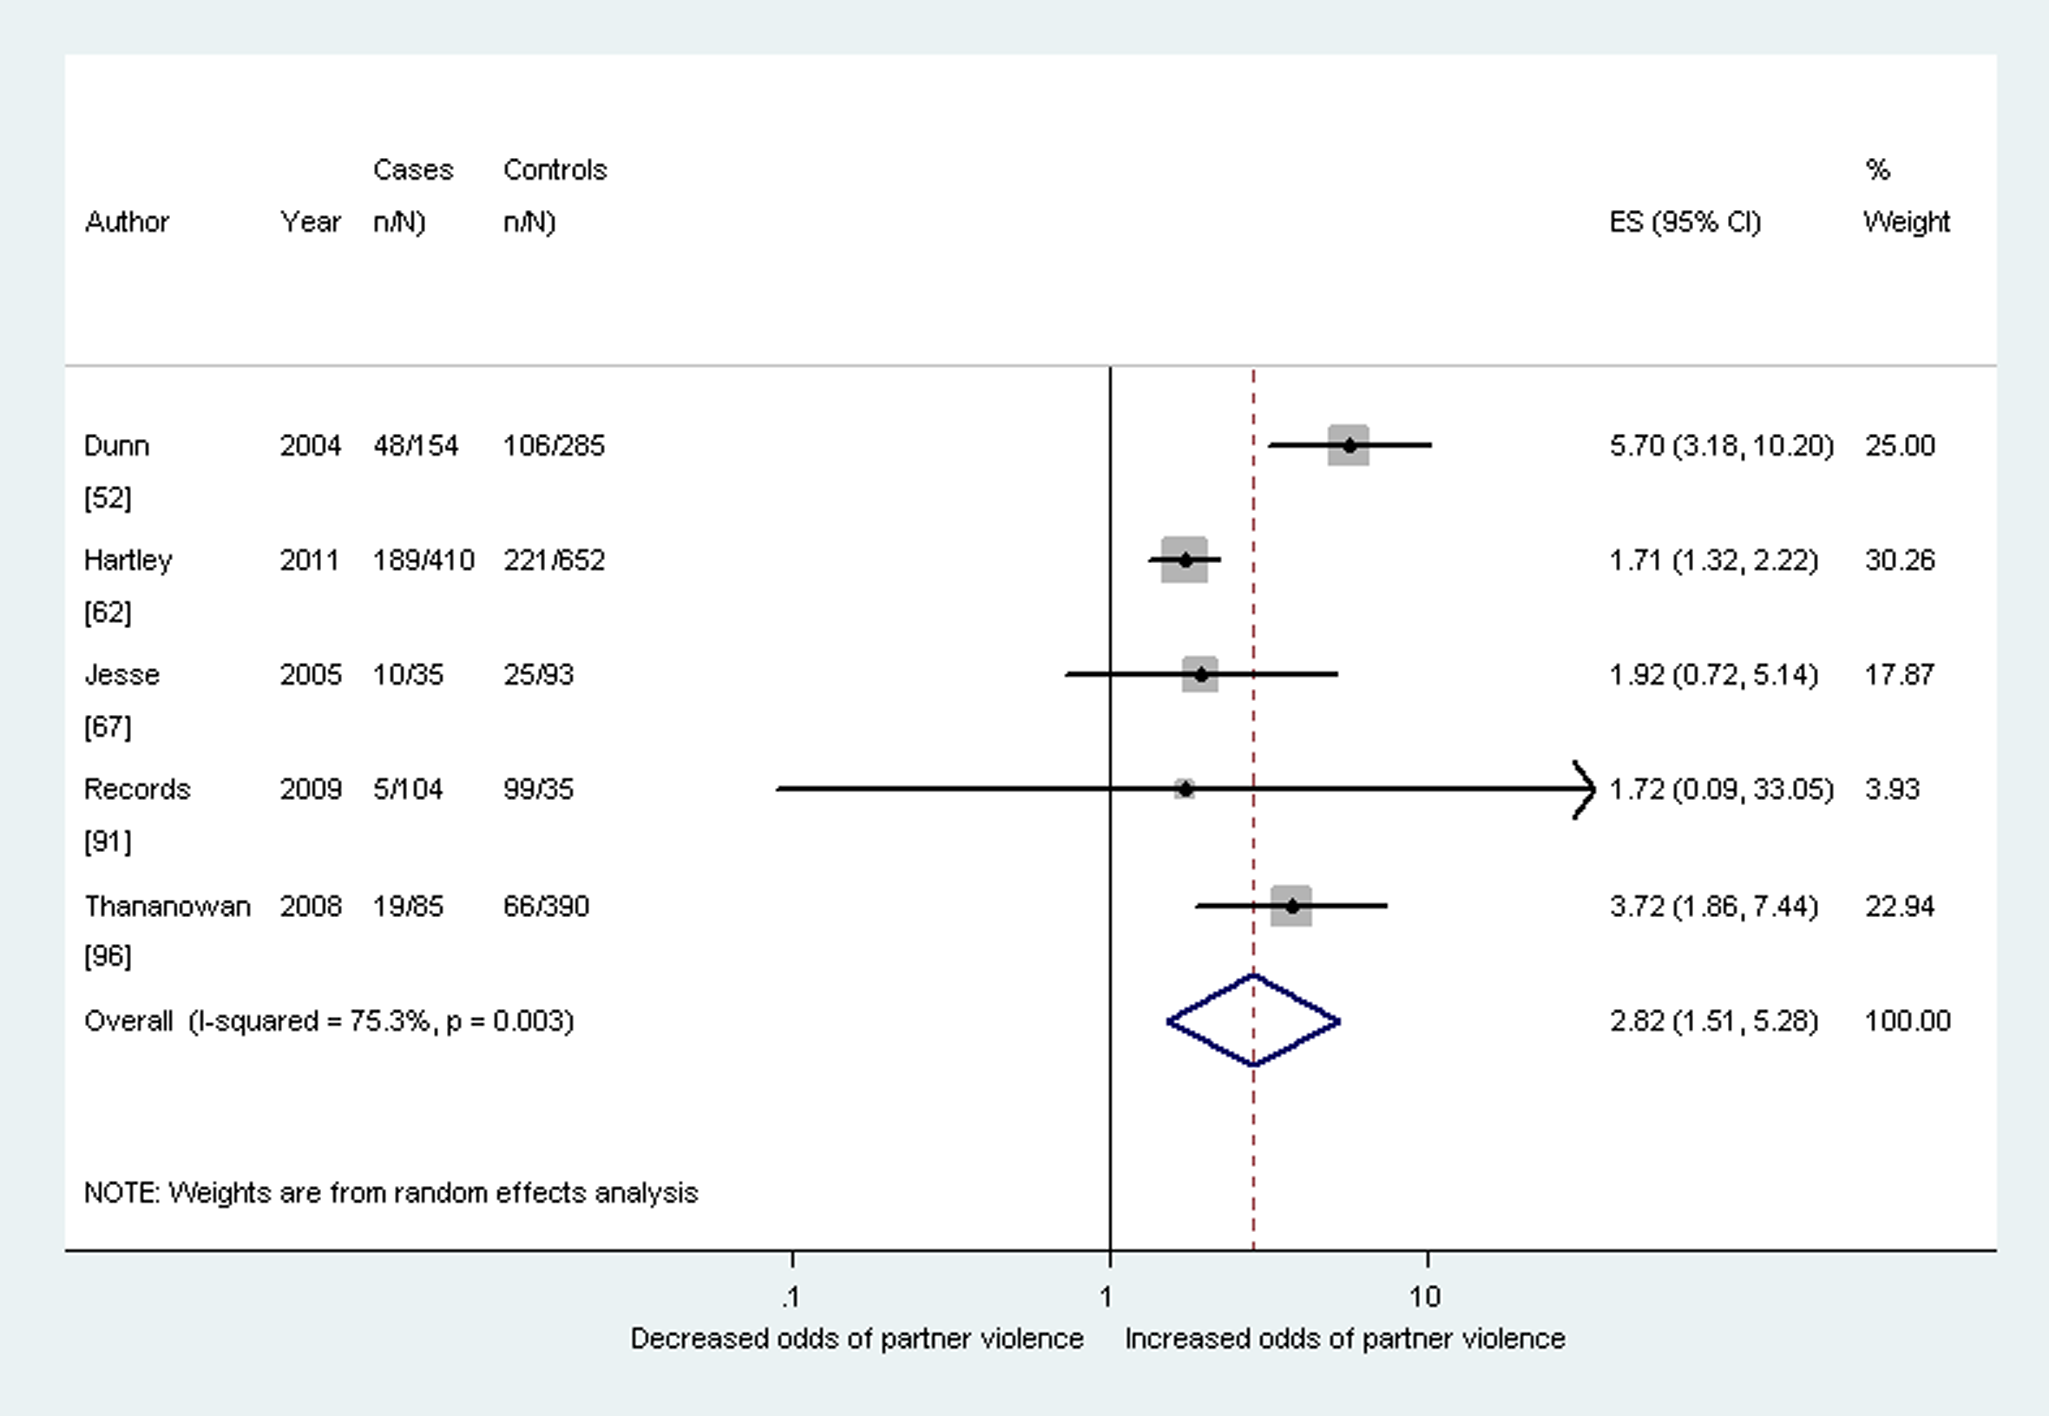 Meta-analysis of the association between antenatal depression and any past year partner violence (cross-sectional studies).